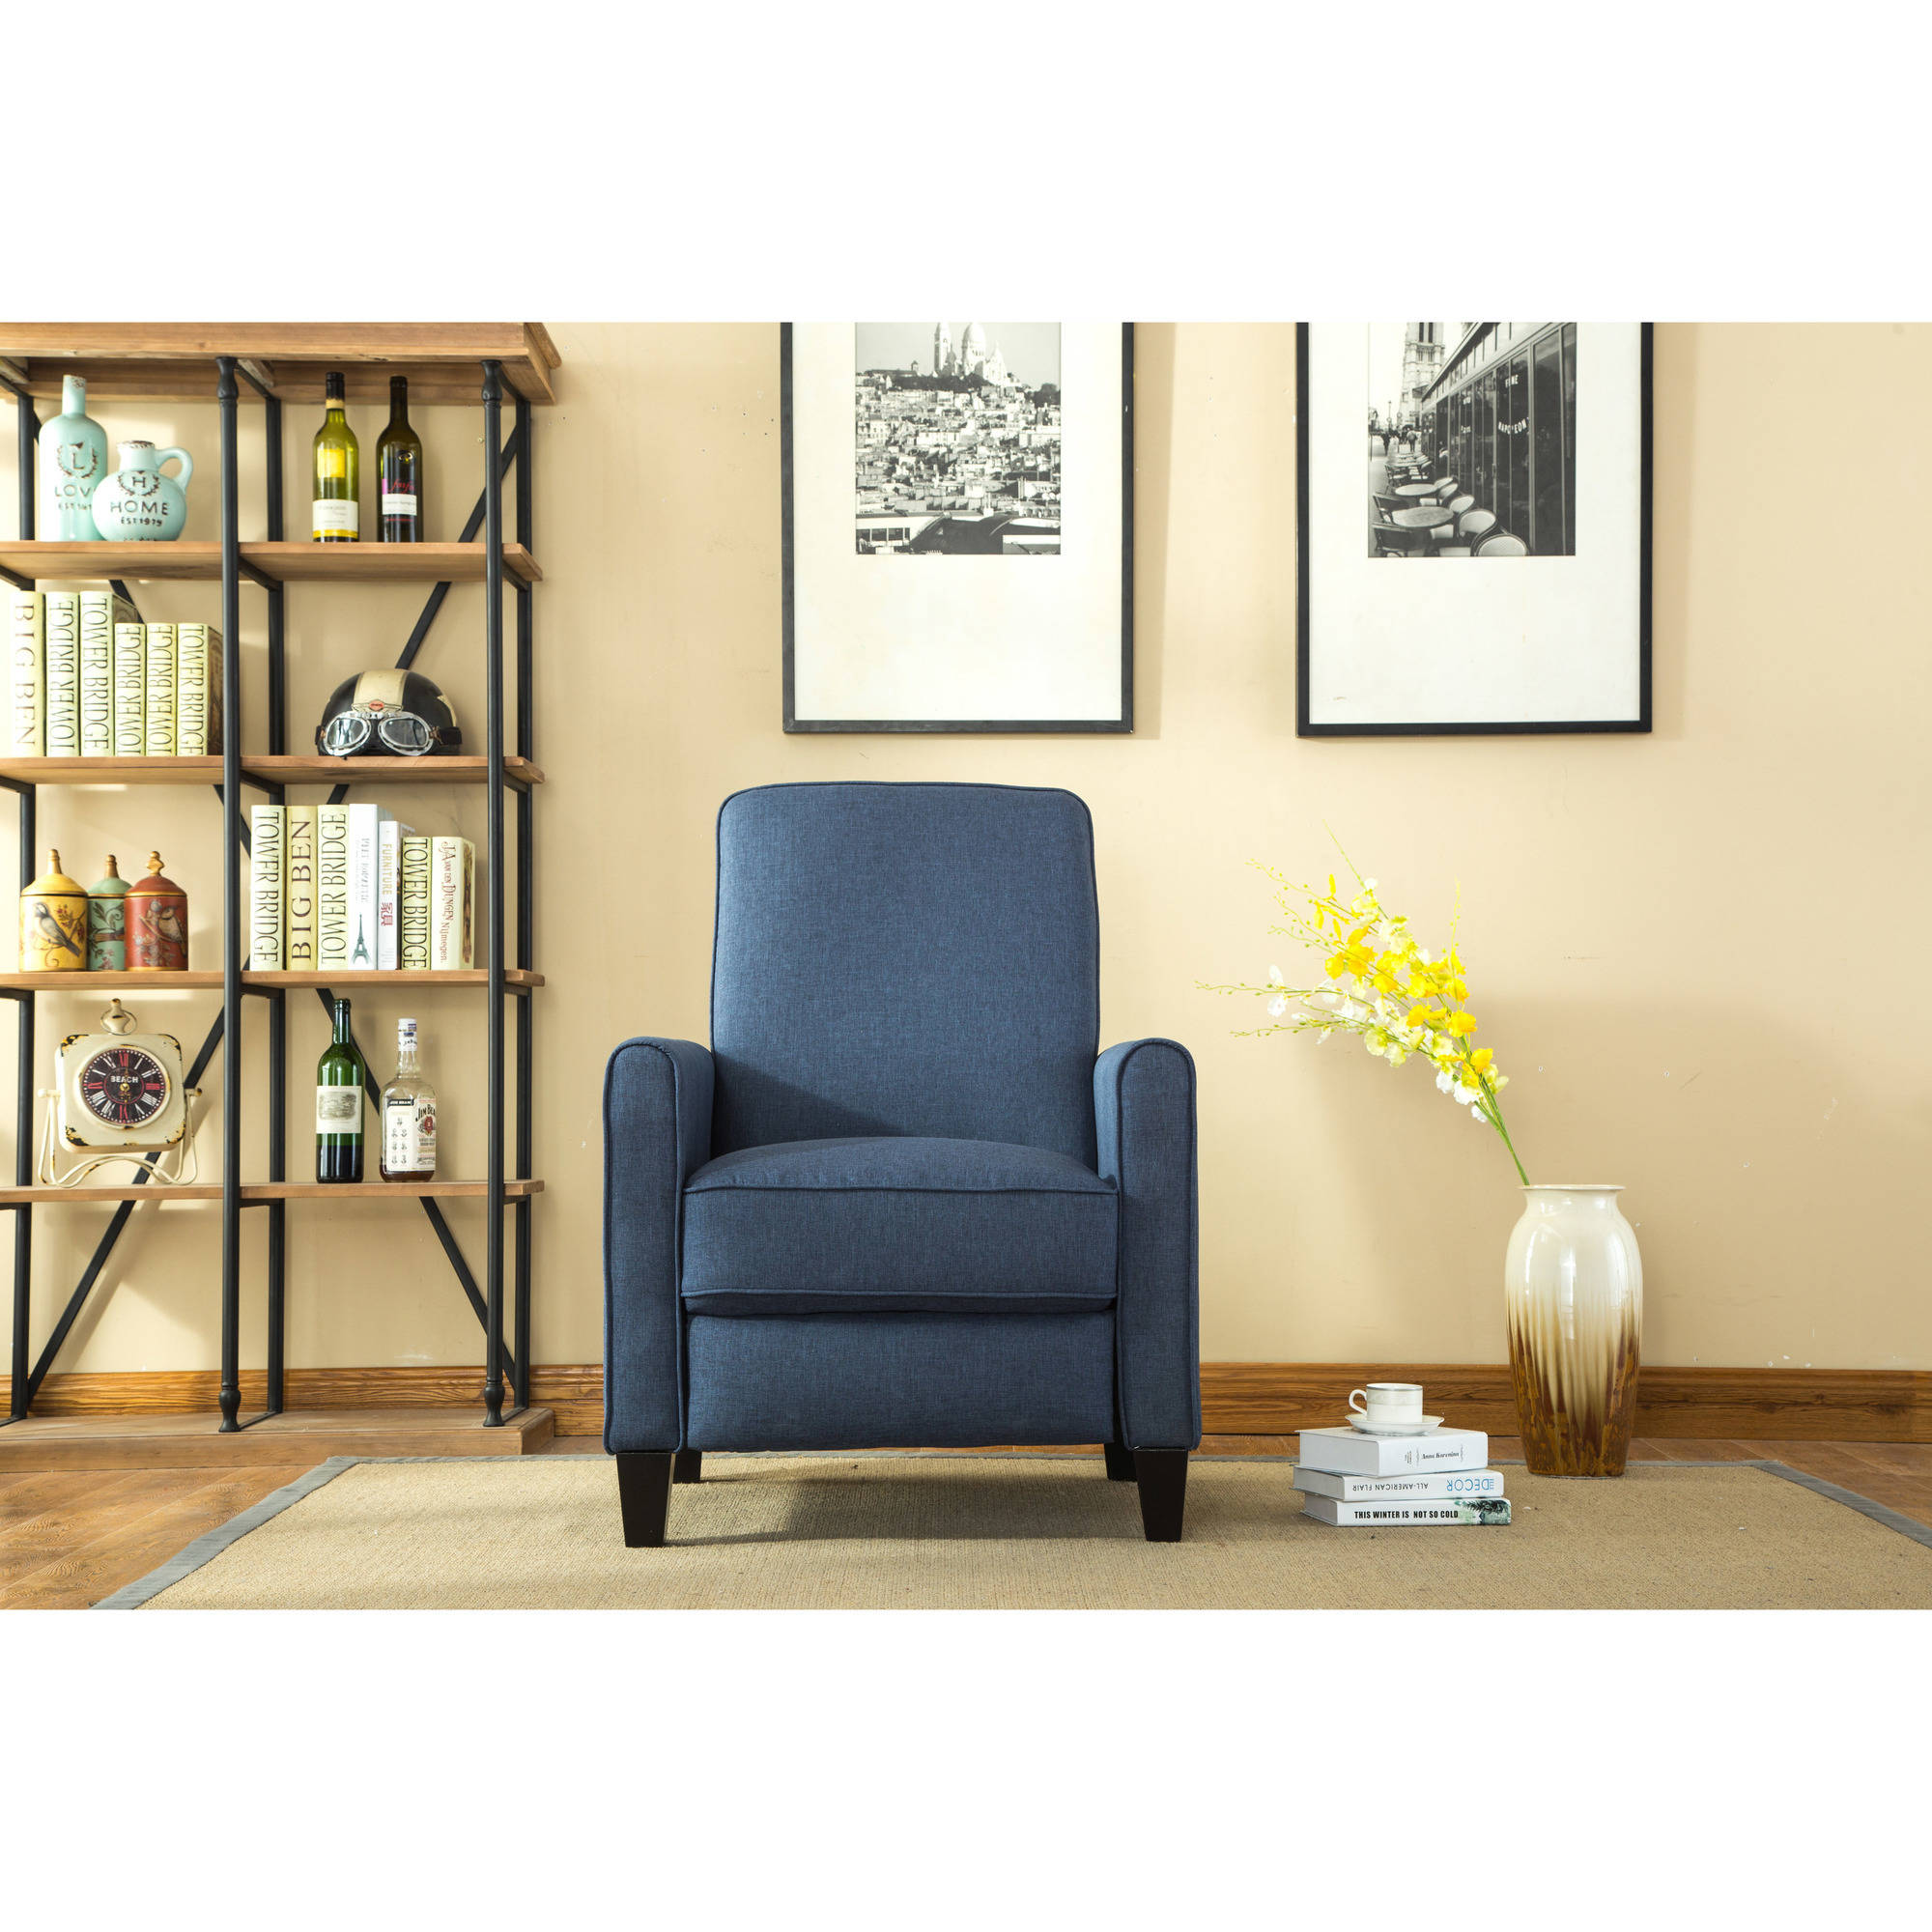 Best Selling Home Decor Darvis Push Back Recliner This Month